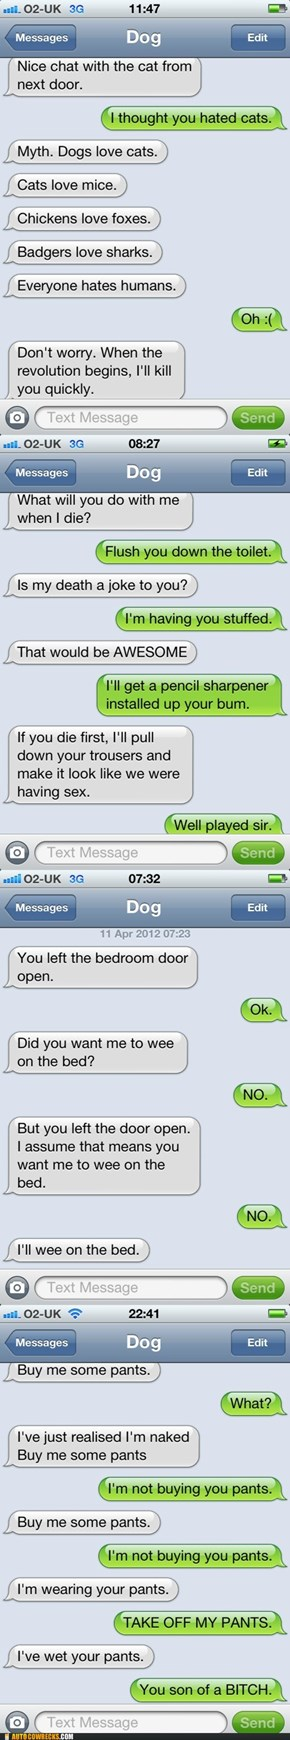 Autocowrecks: If Dogs Could Text, Part II